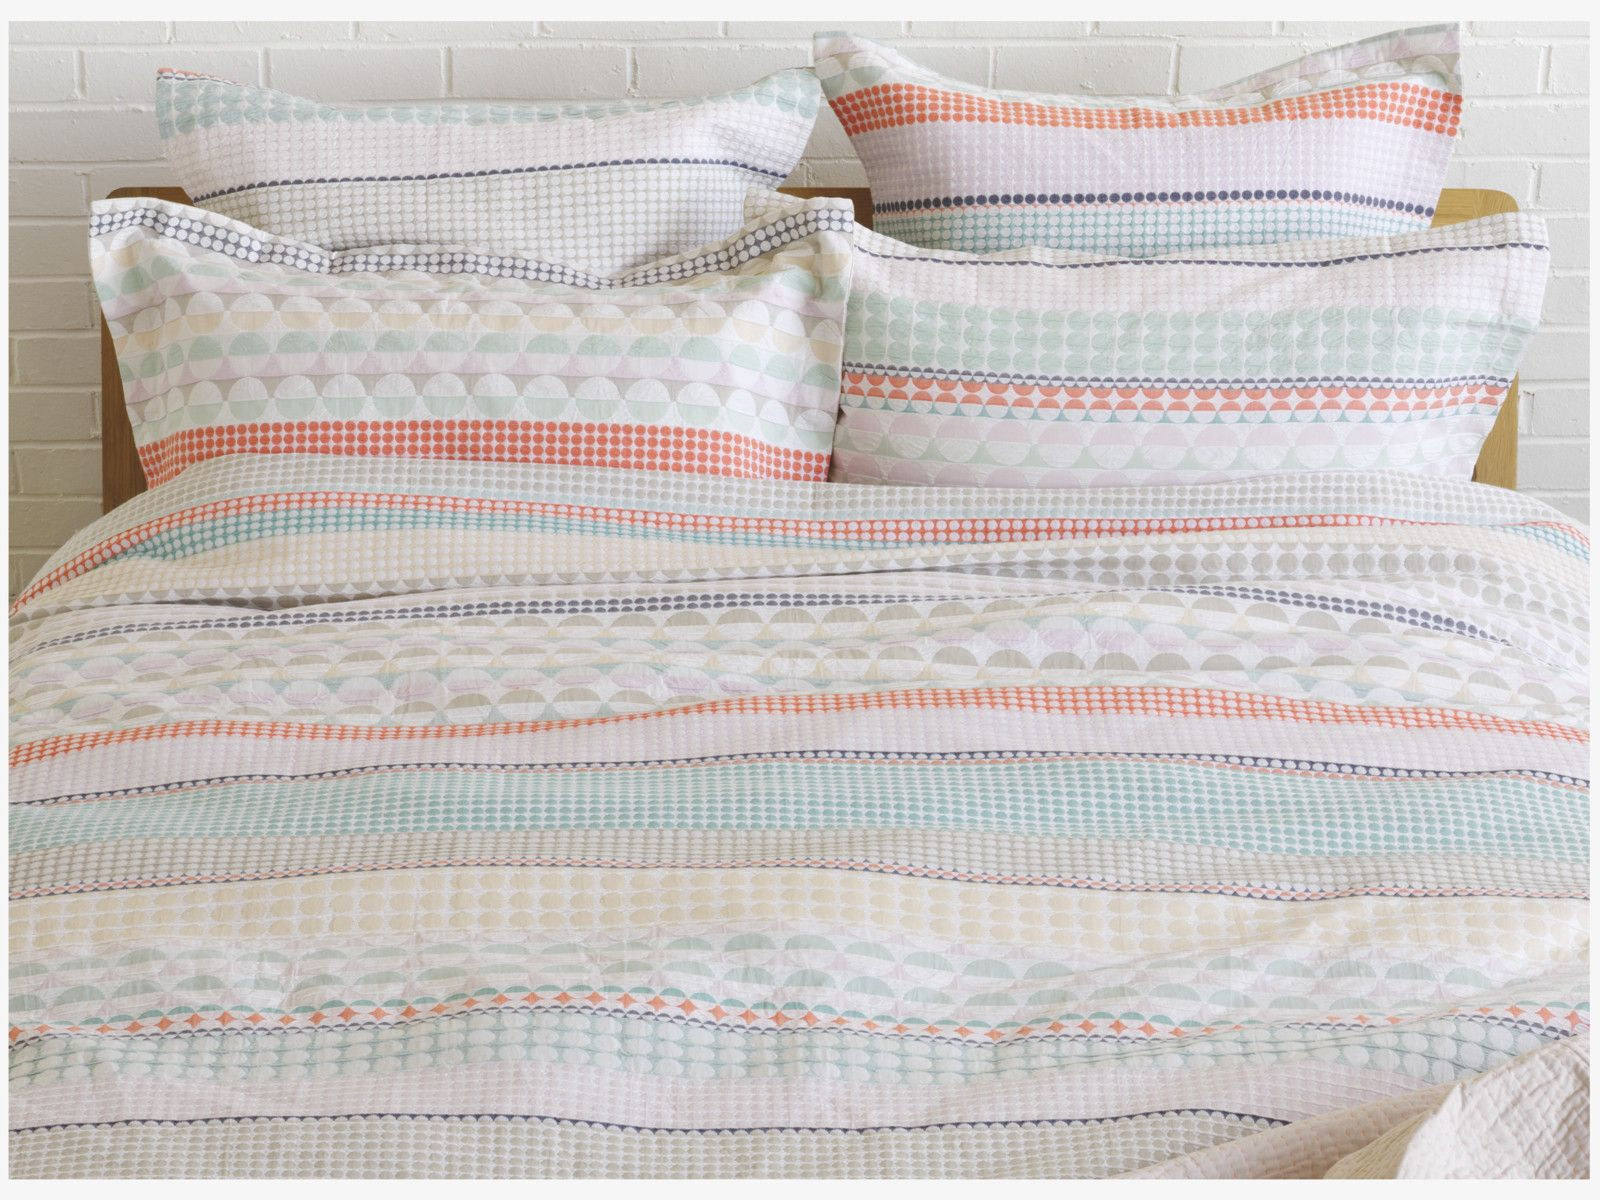 Gorgeous Woven Pattern Duvet Cover By Margo Selby For Habitat The Only Thing On My